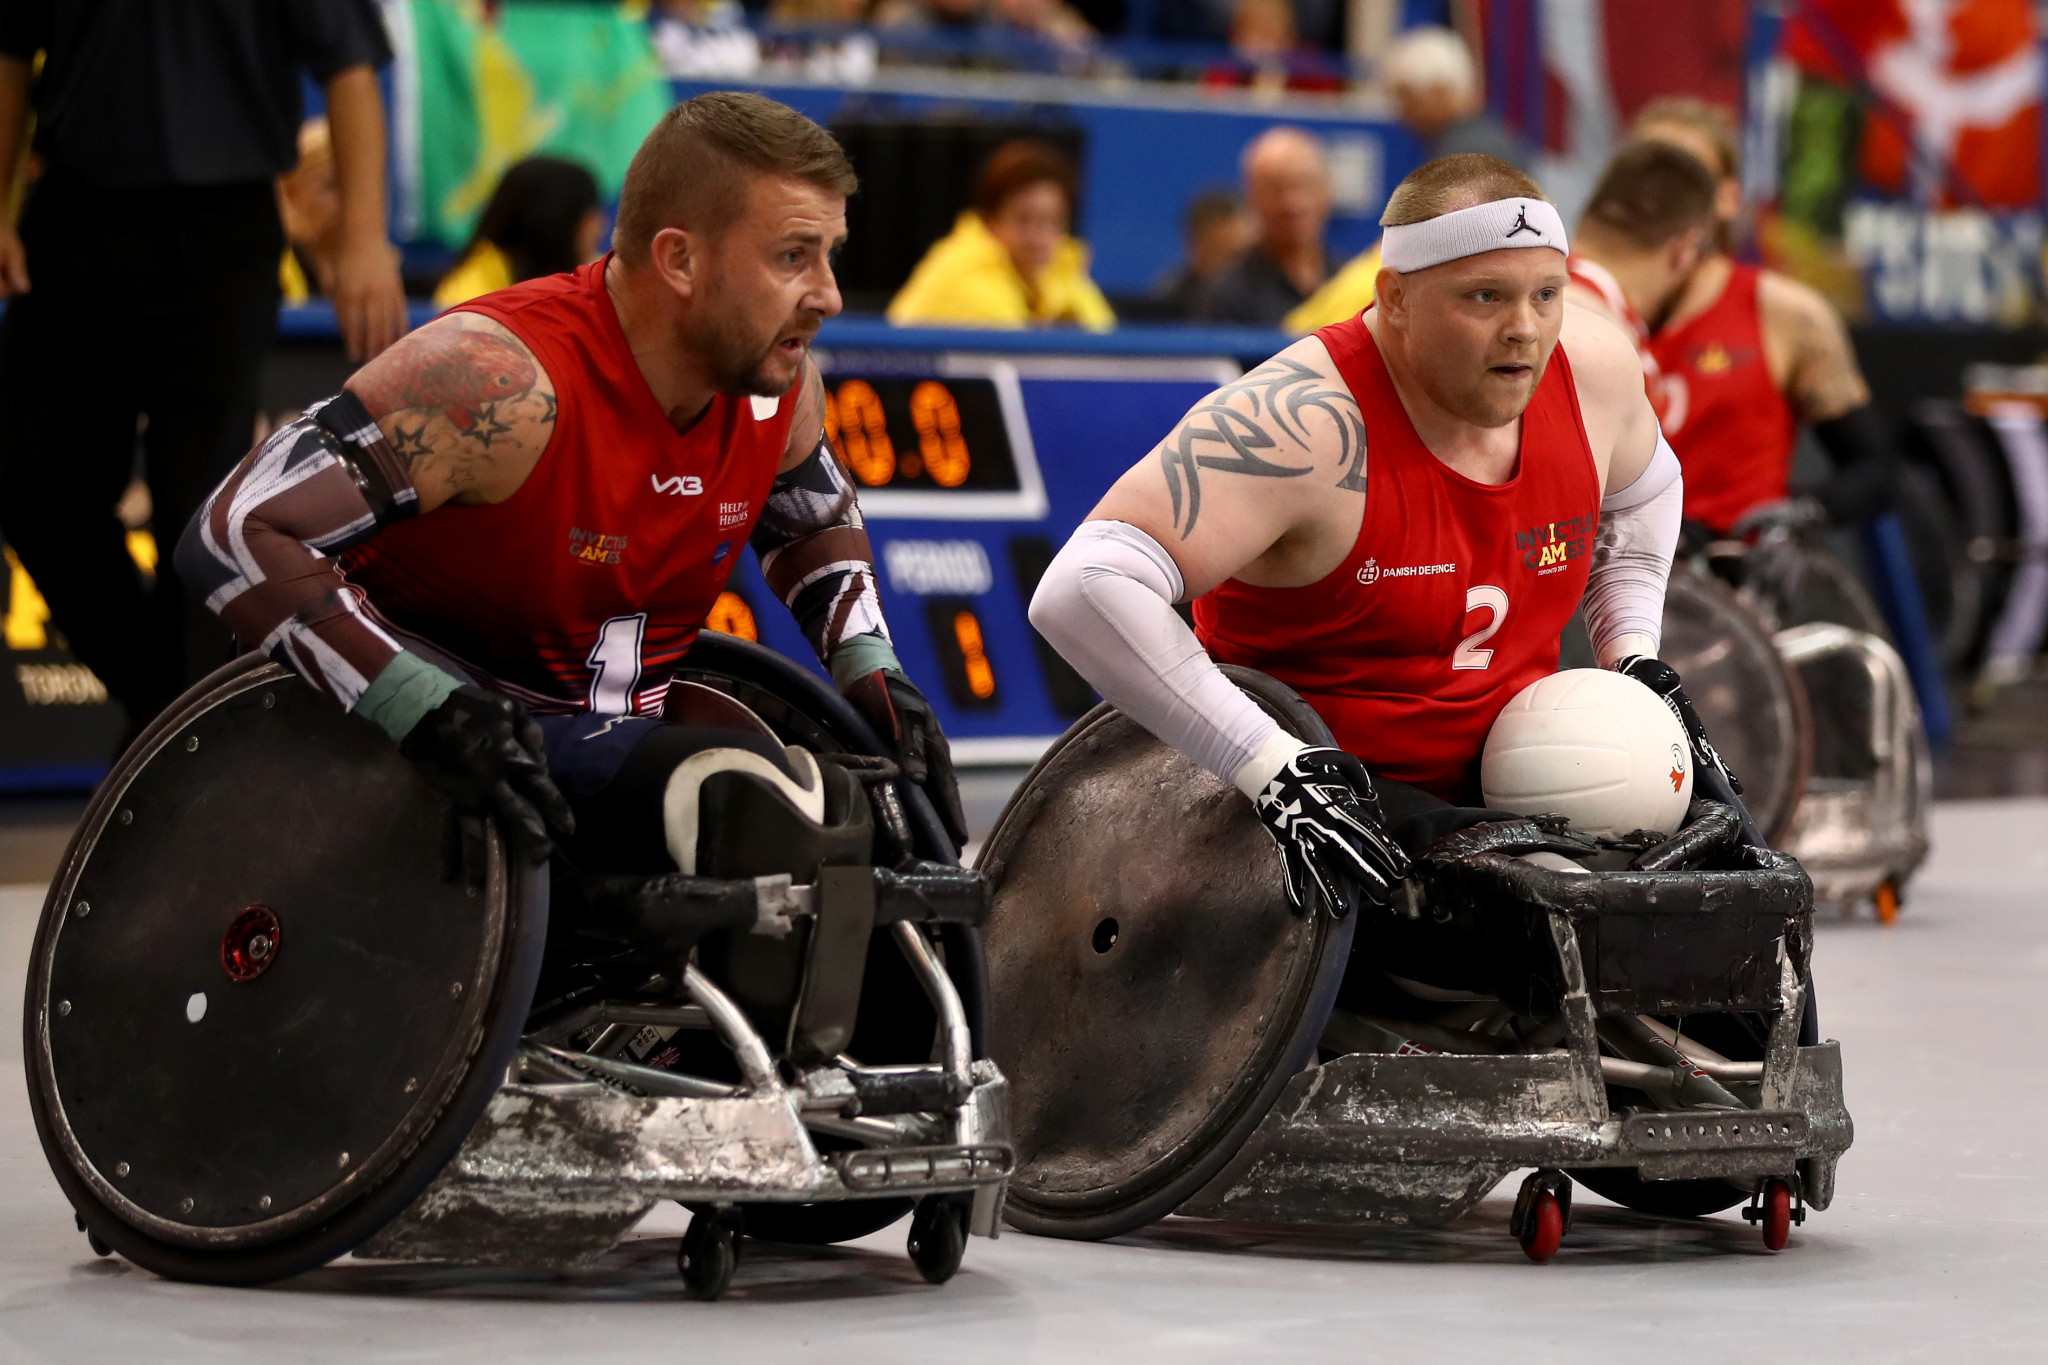 Velje in Denmark has been named as the host city for the 2019 International Wheelchair Rugby Federation (IWRF) European Championship Division A which Great Britain will feature in ©Getty Images